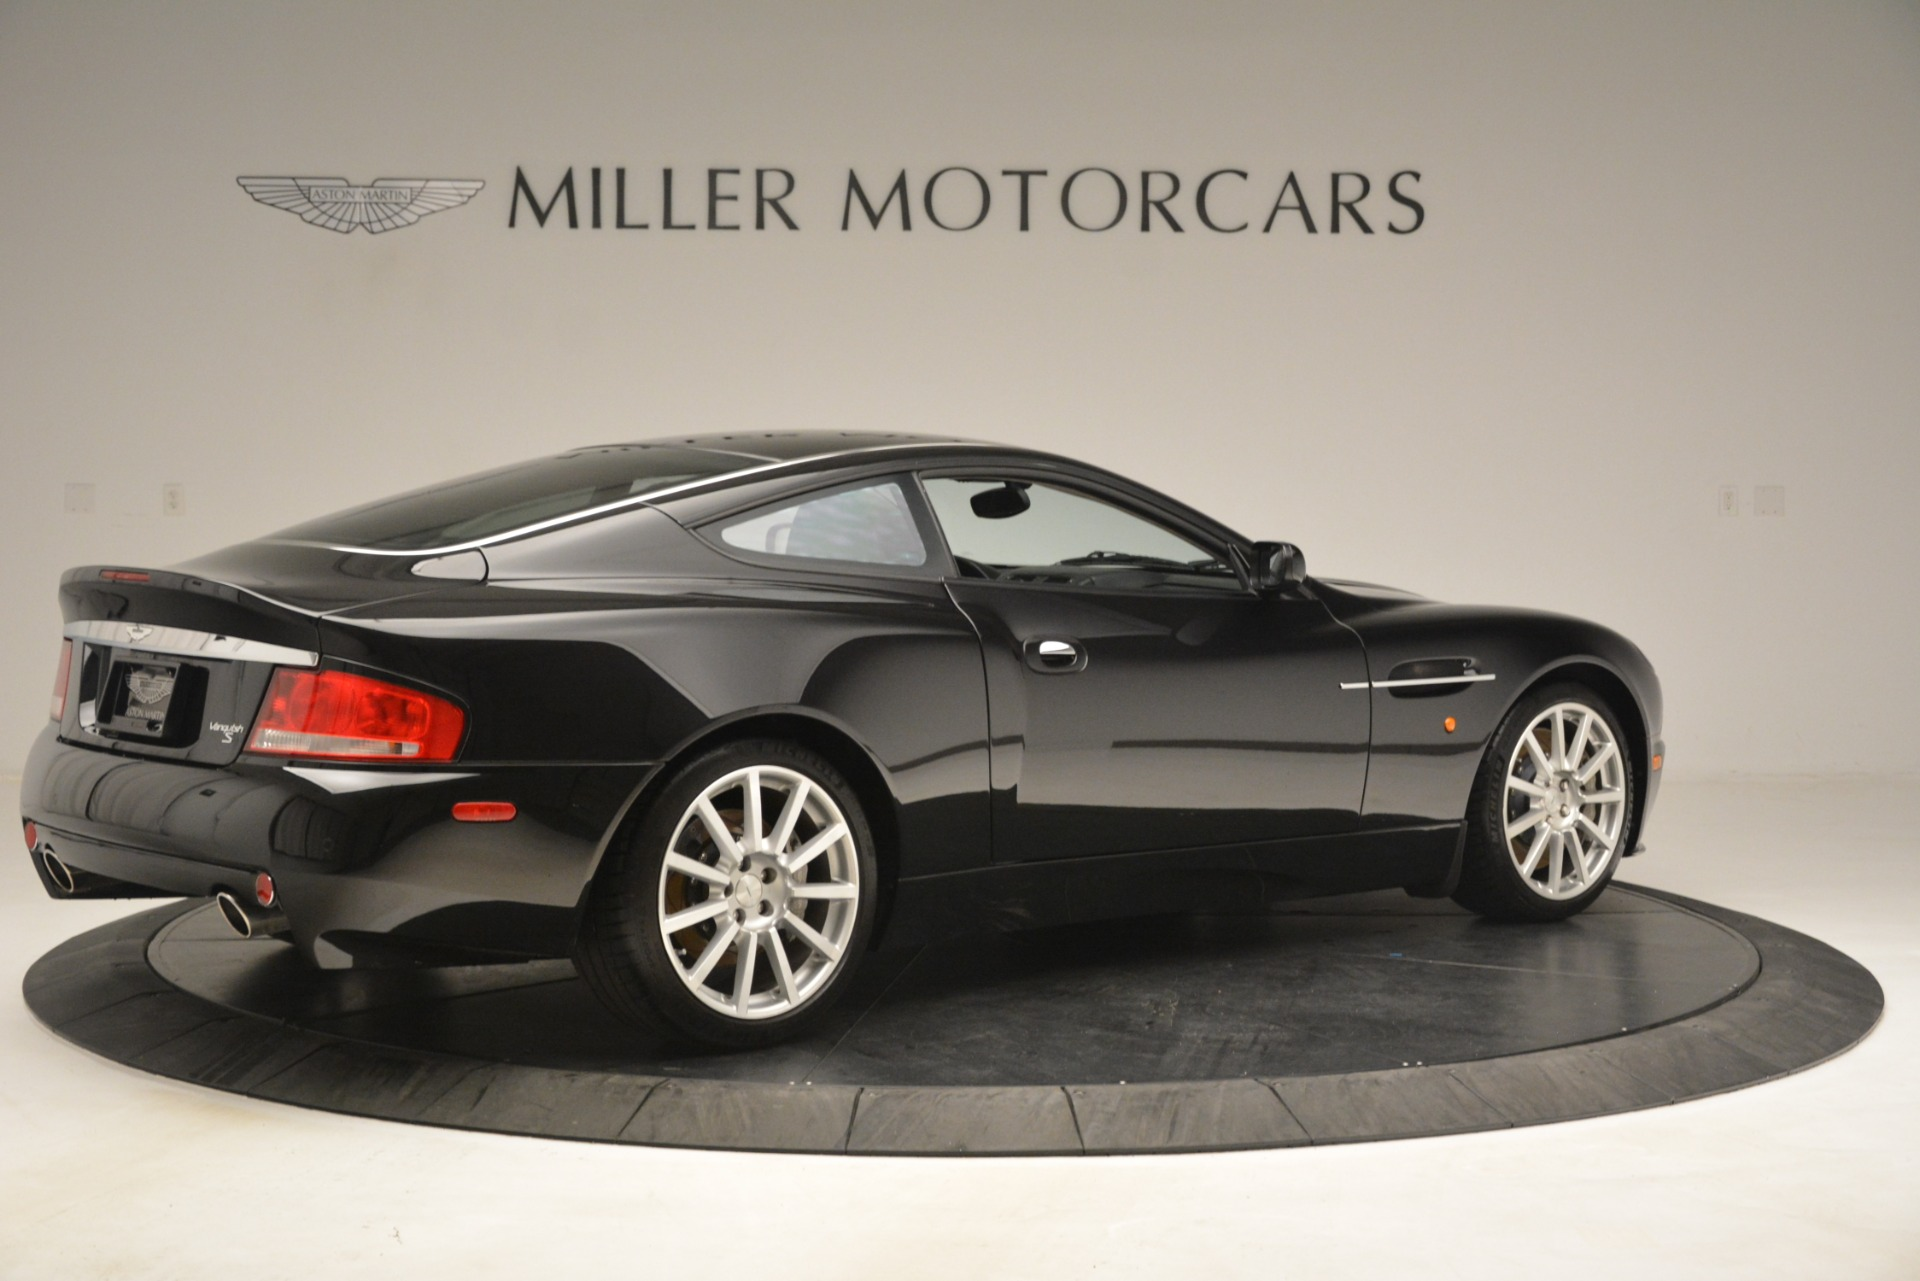 Used 2005 Aston Martin V12 Vanquish S Coupe For Sale In Westport, CT 3218_p8